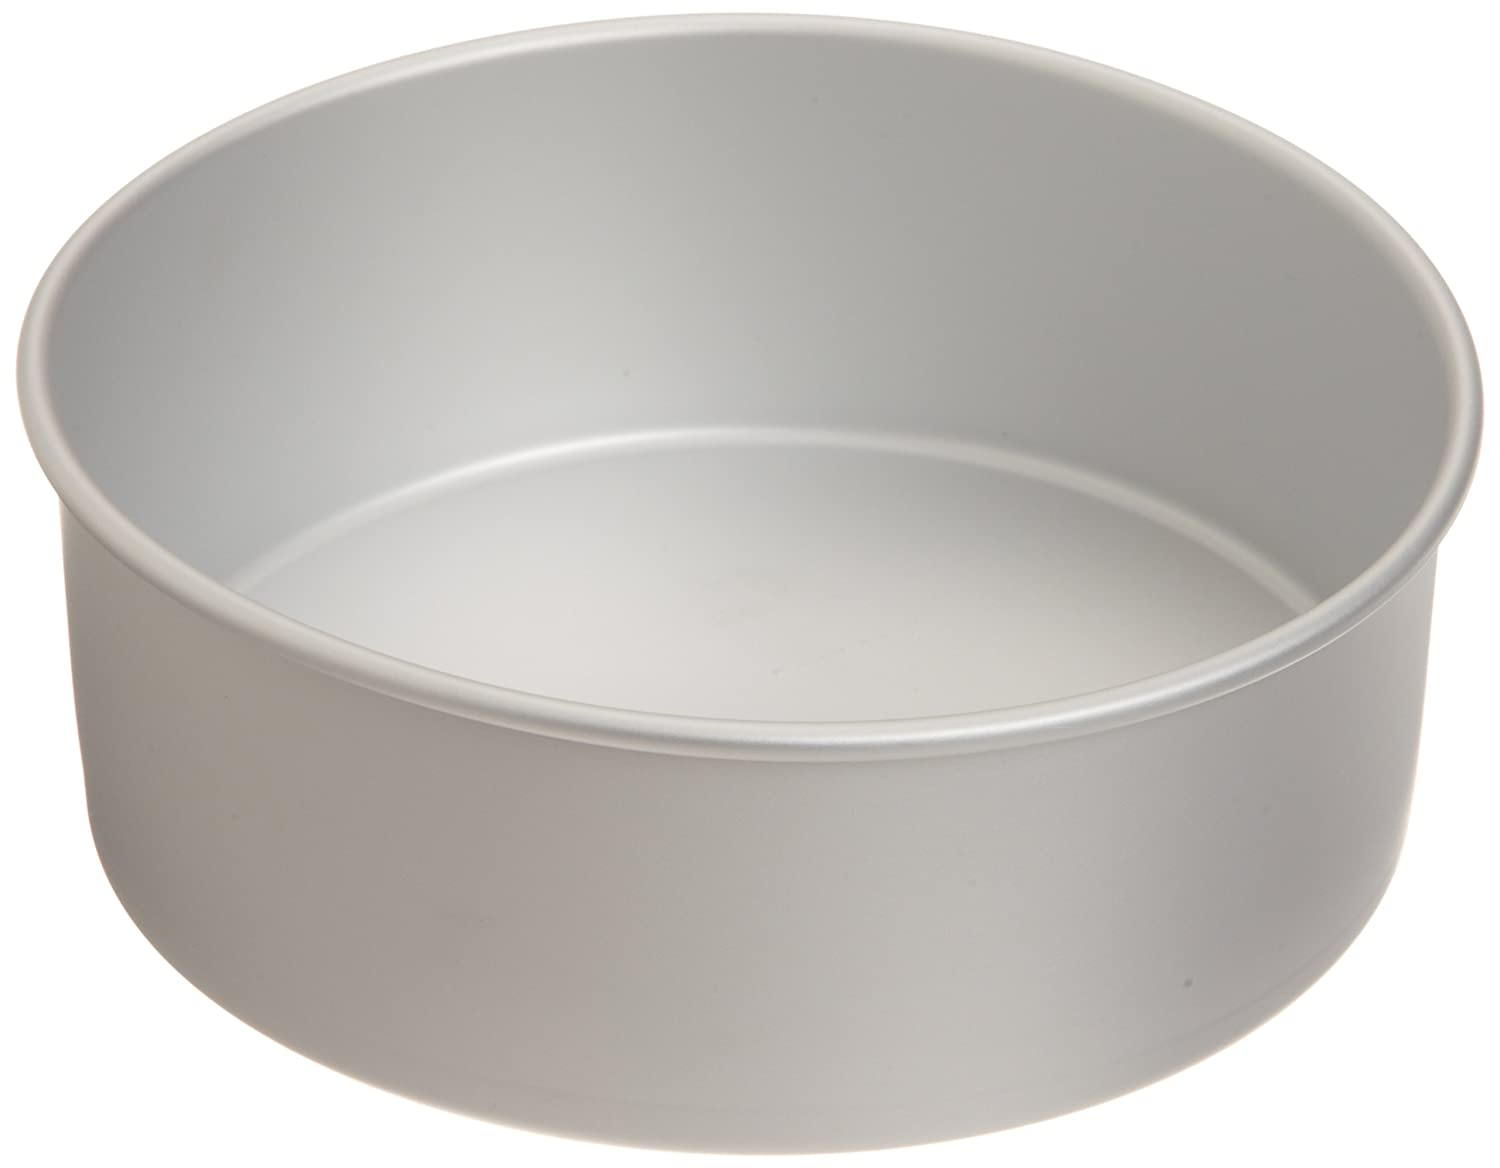 Images Of Round Cake Pans : Images Round Cake Pans 2015 - House Style Pictures